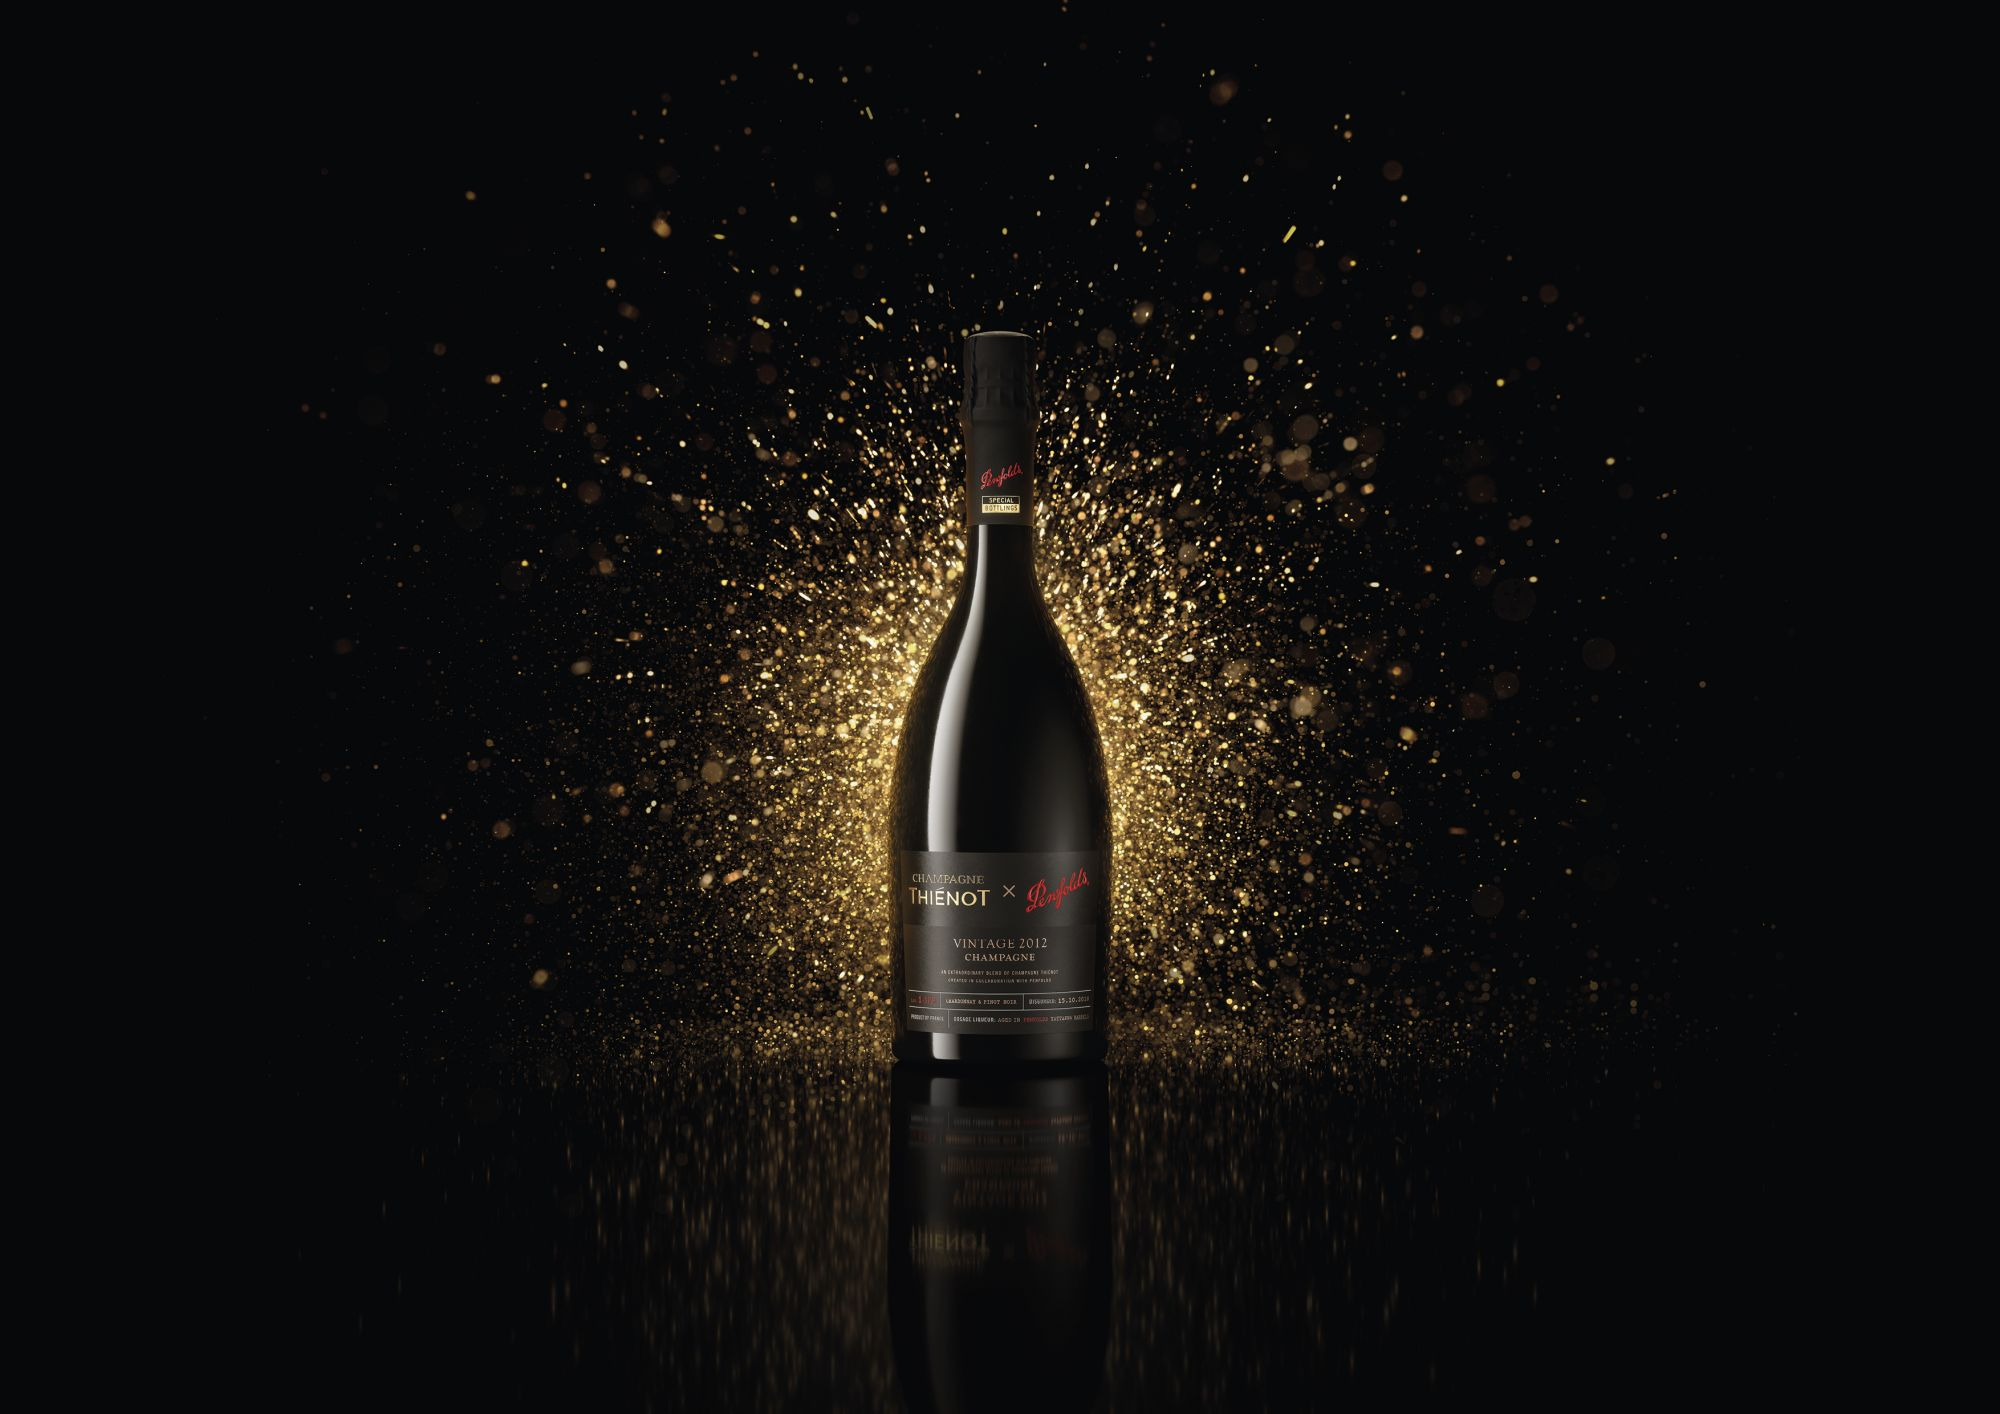 Penfolds And Champagne Thiénot Make History With New Partnership